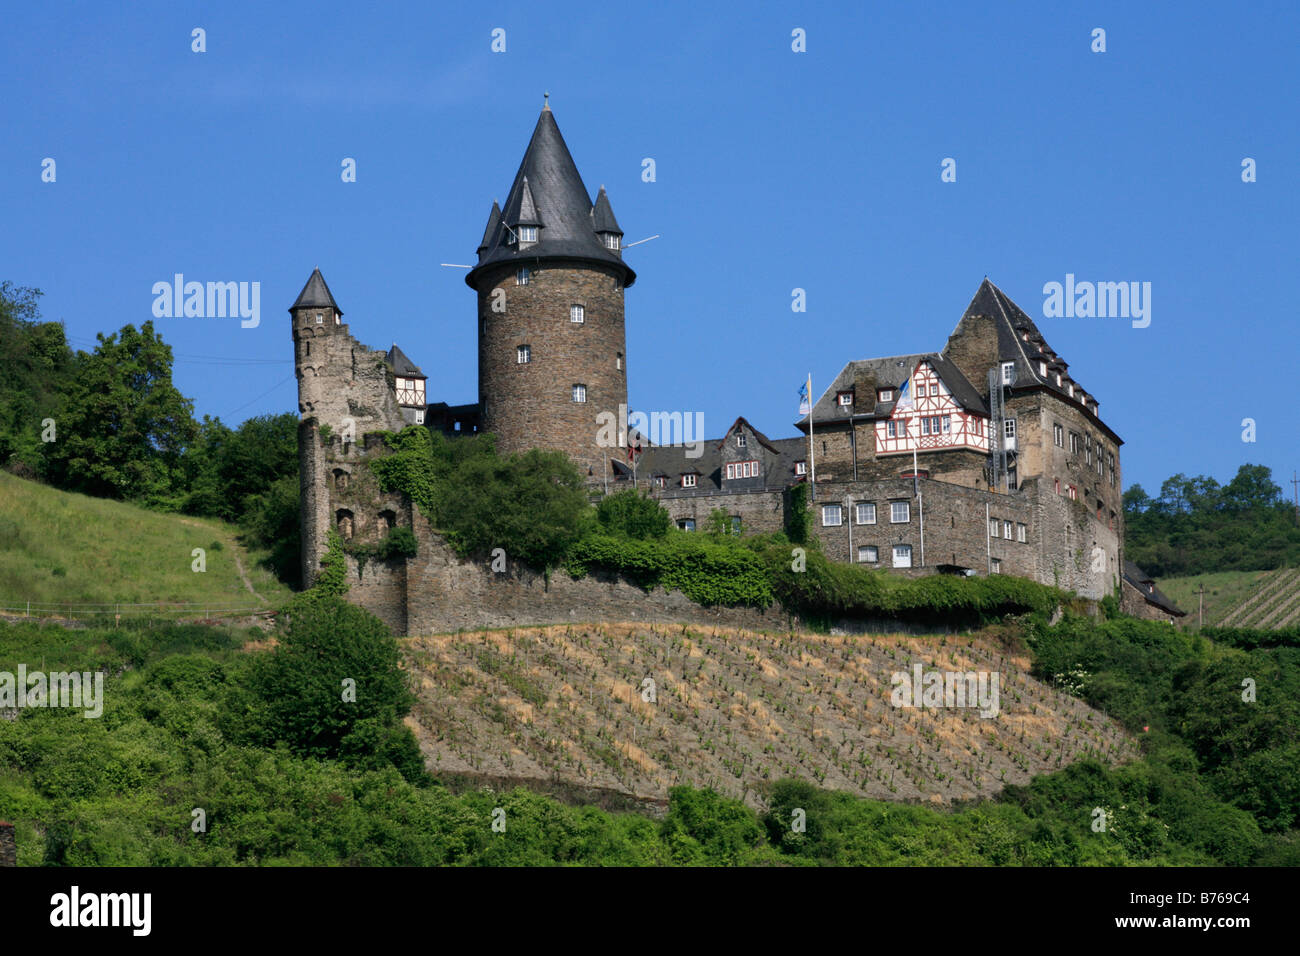 stahleck castle rhine gorge upper middle rhine valley mainz bingen stock photo royalty free. Black Bedroom Furniture Sets. Home Design Ideas